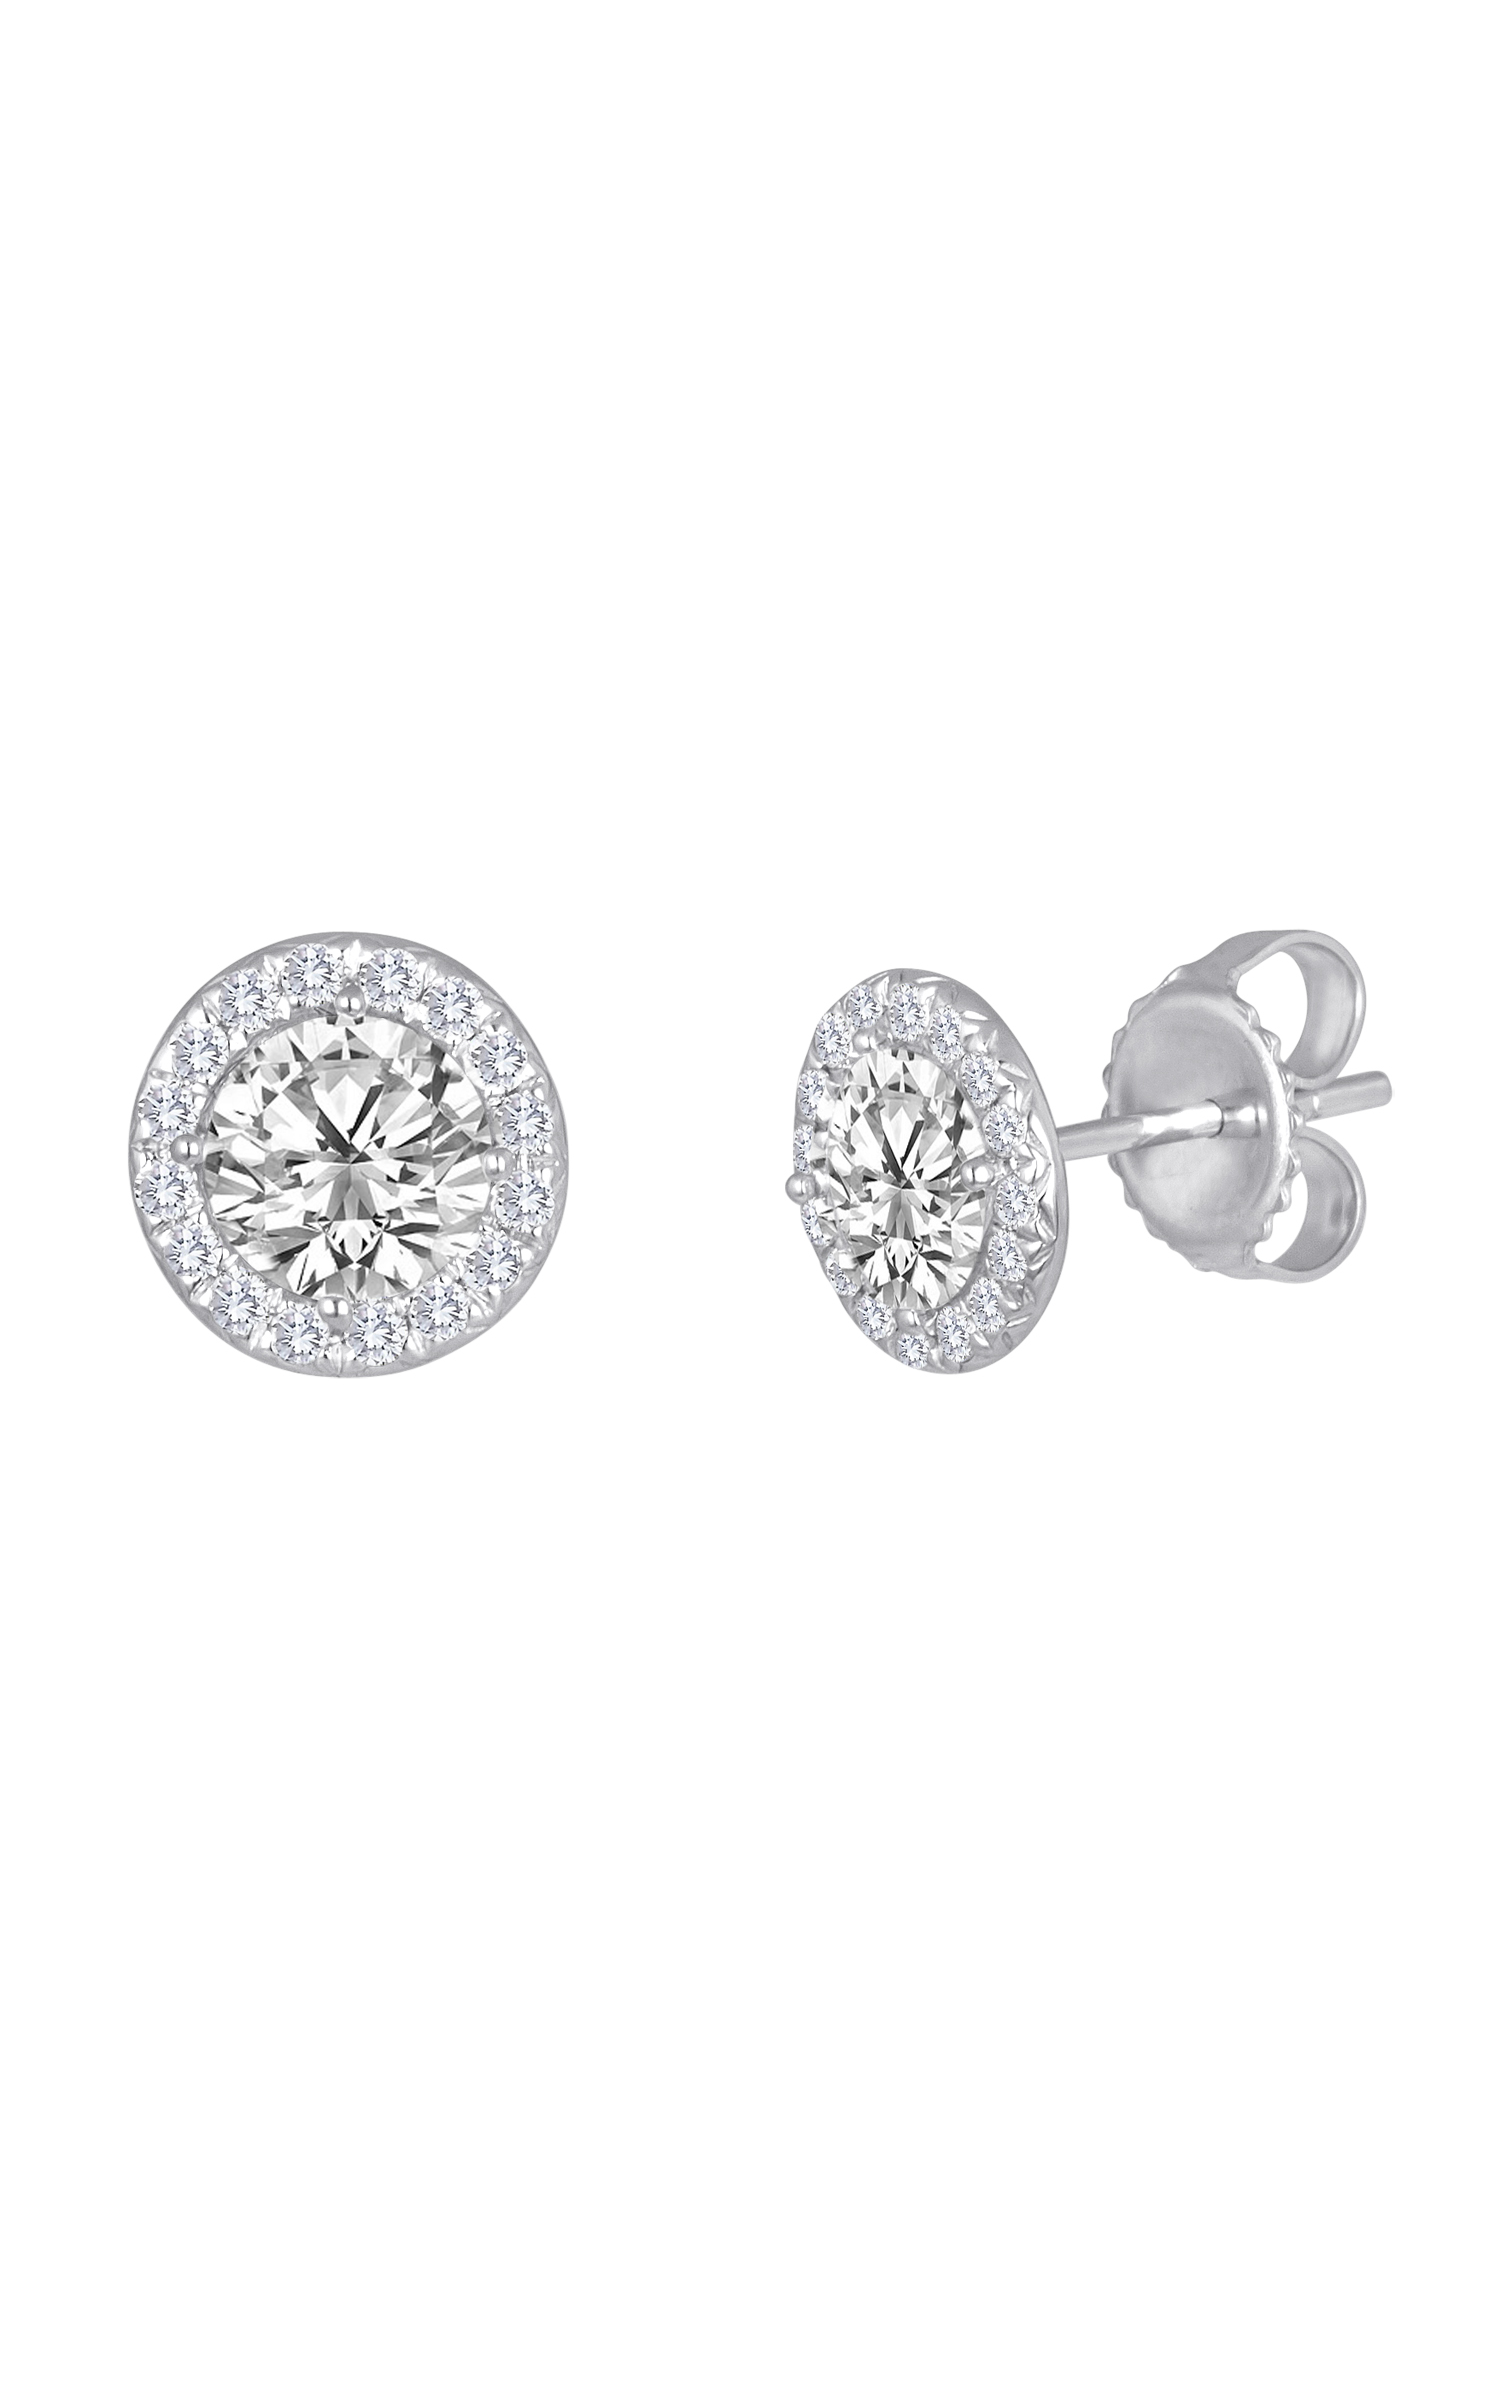 Beny Sofer Earrings SE12-146-6C product image